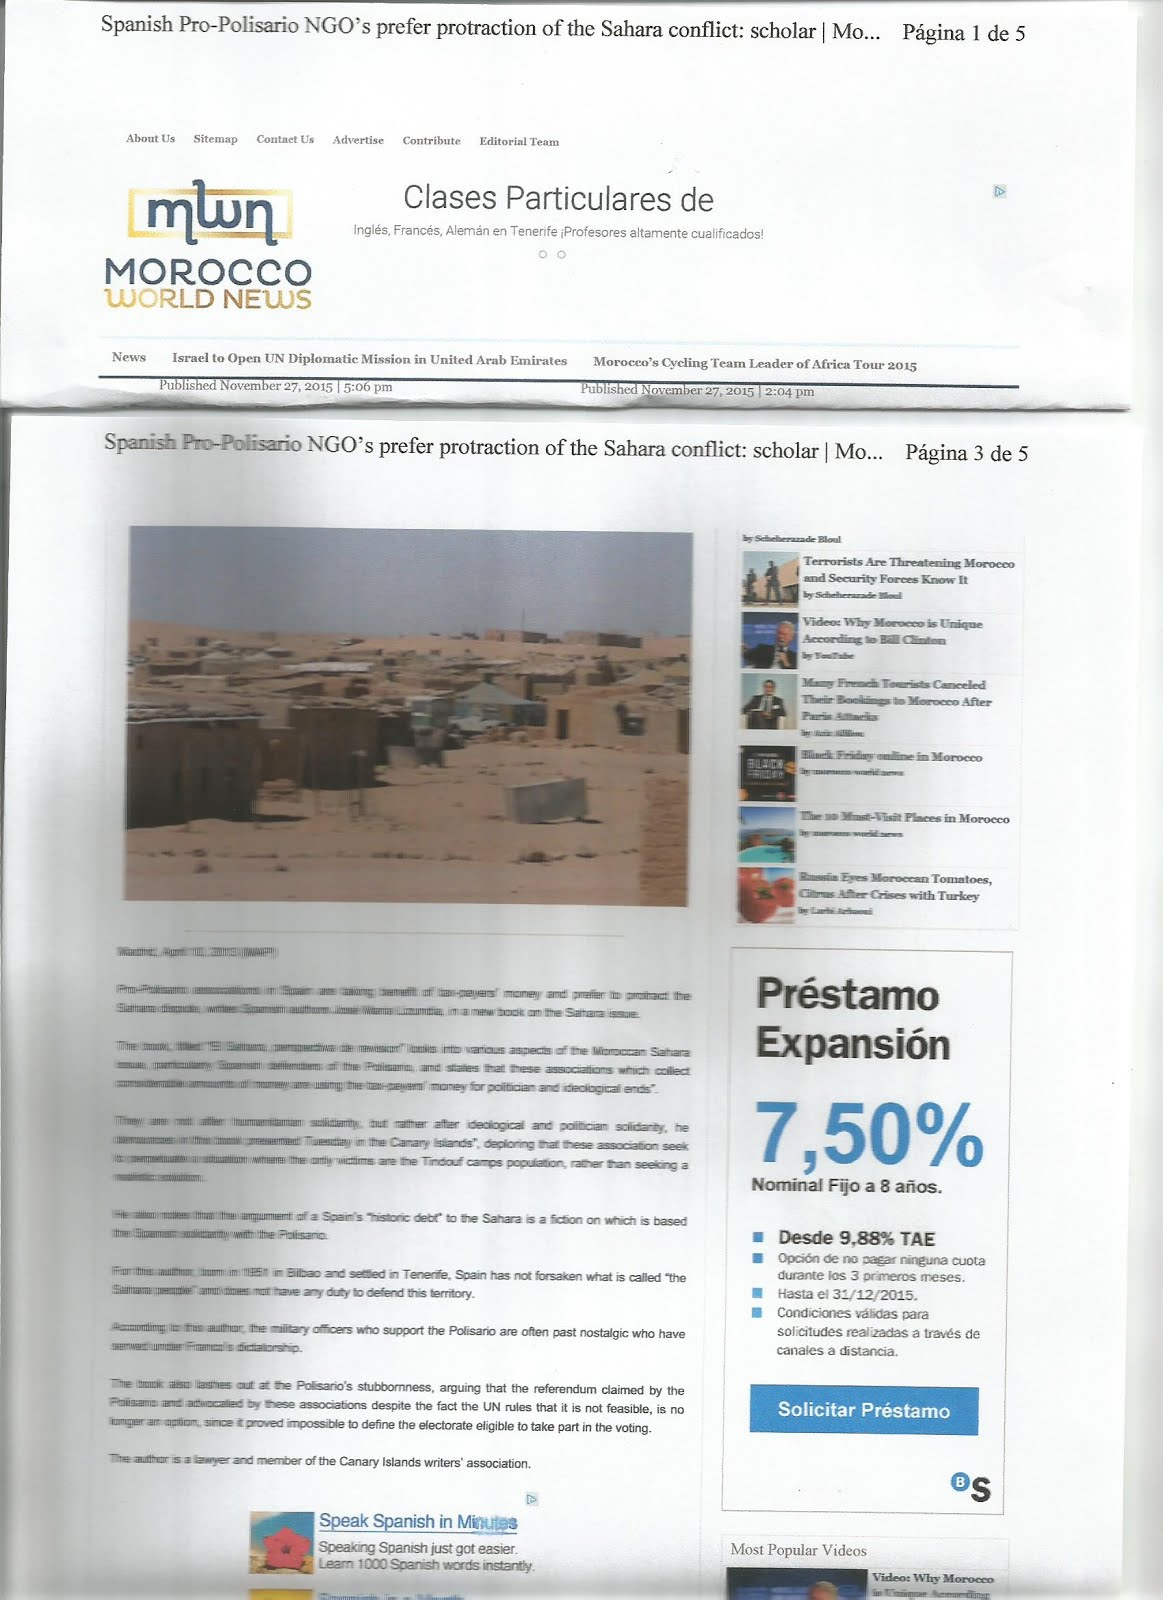 MAROCCO WORLD NEWS